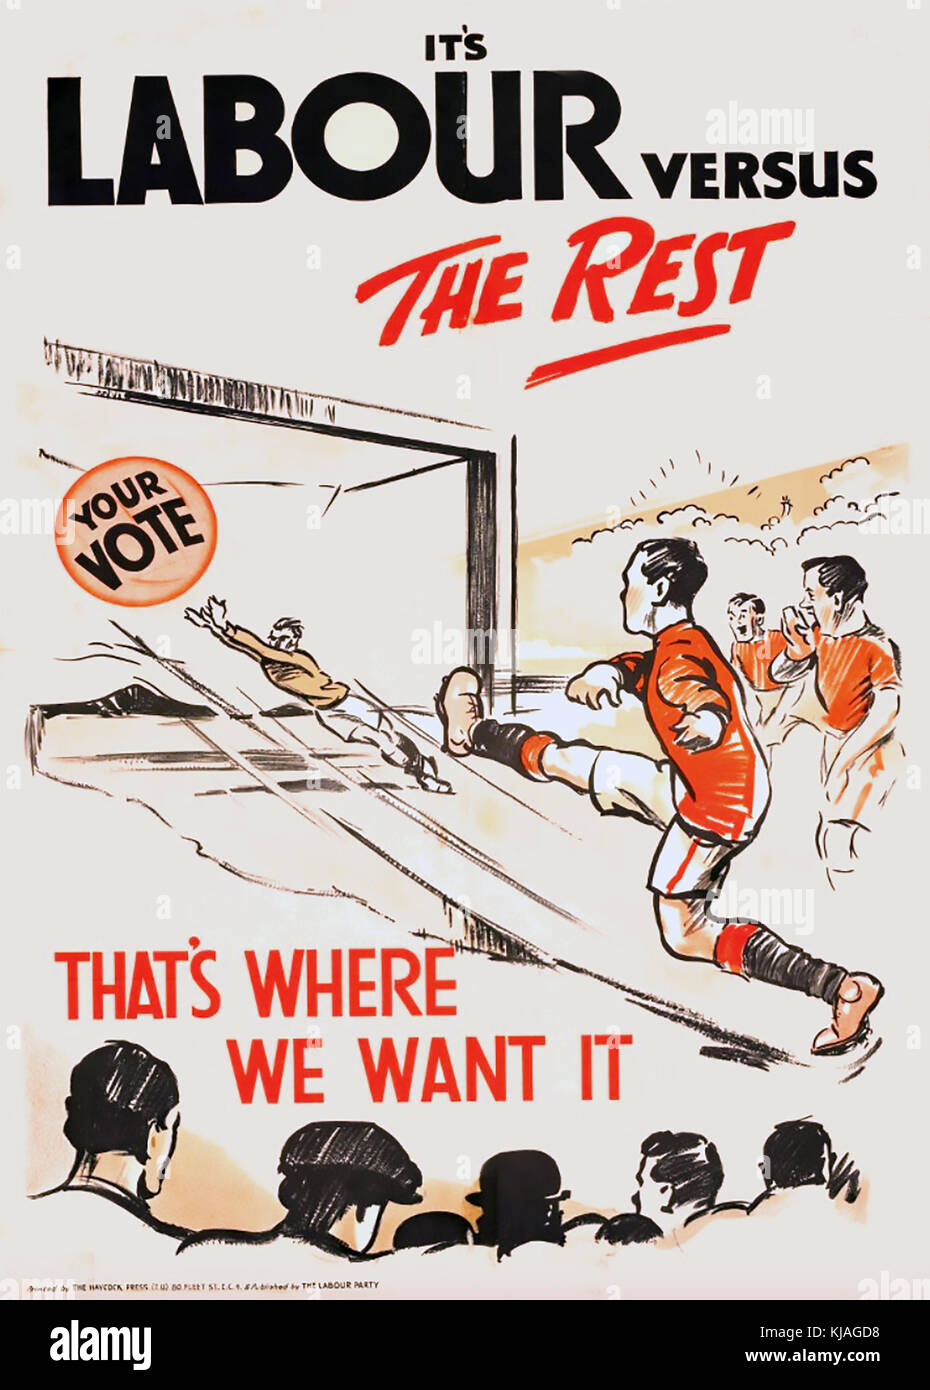 LABOUR VERSUS THE REST  1924 Labour Party poster - Stock Image